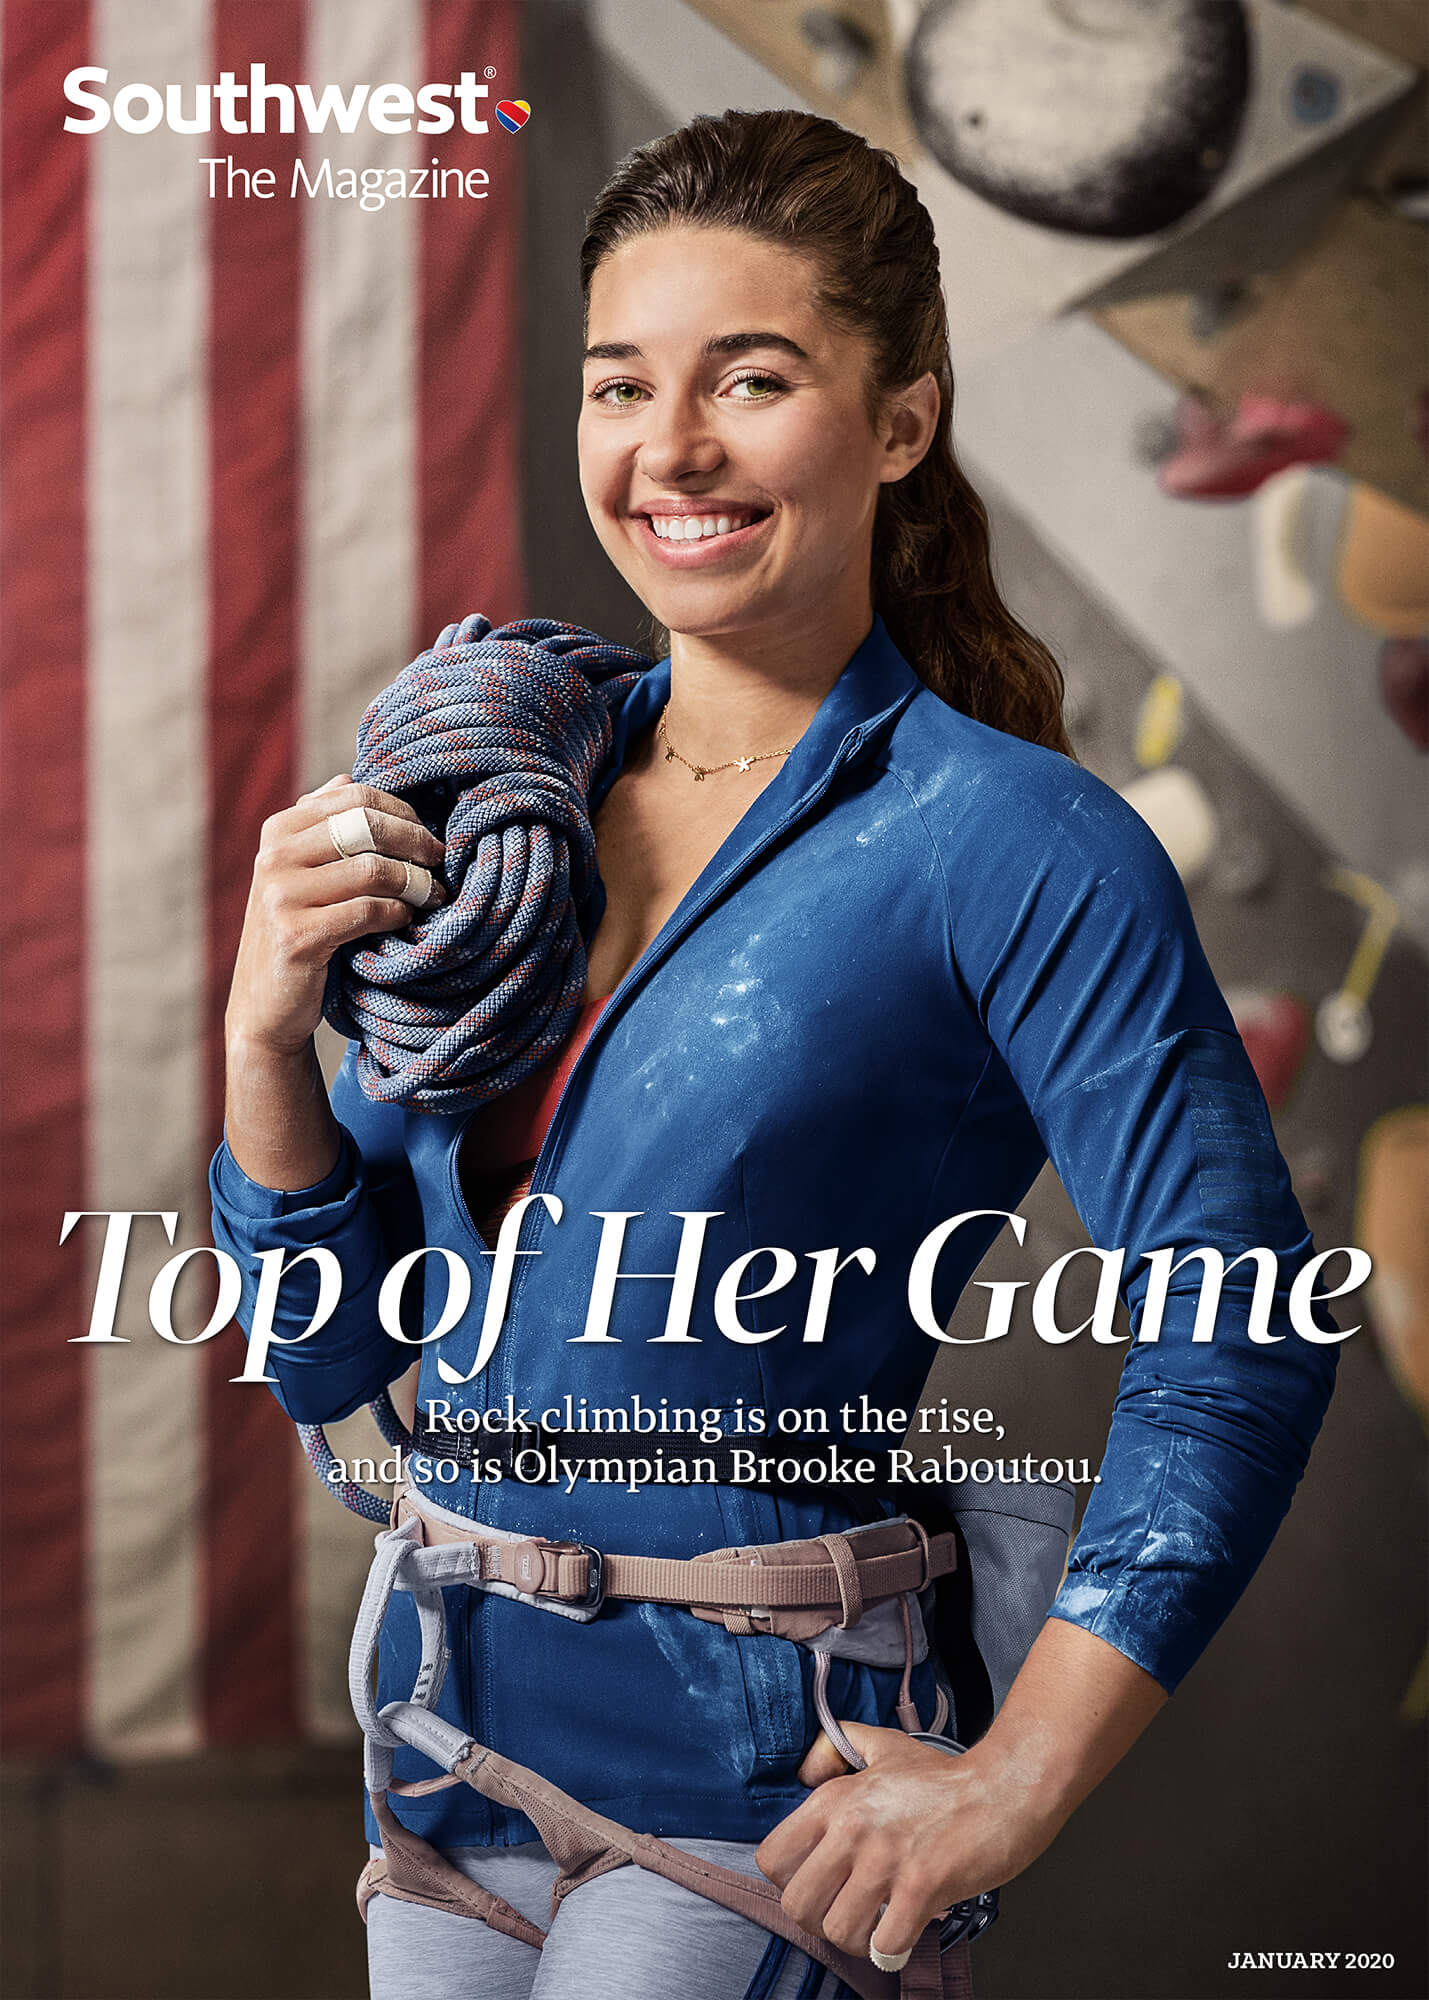 January 2020 Southwest Magazine cover of Olympic climber Brooke Raboutou